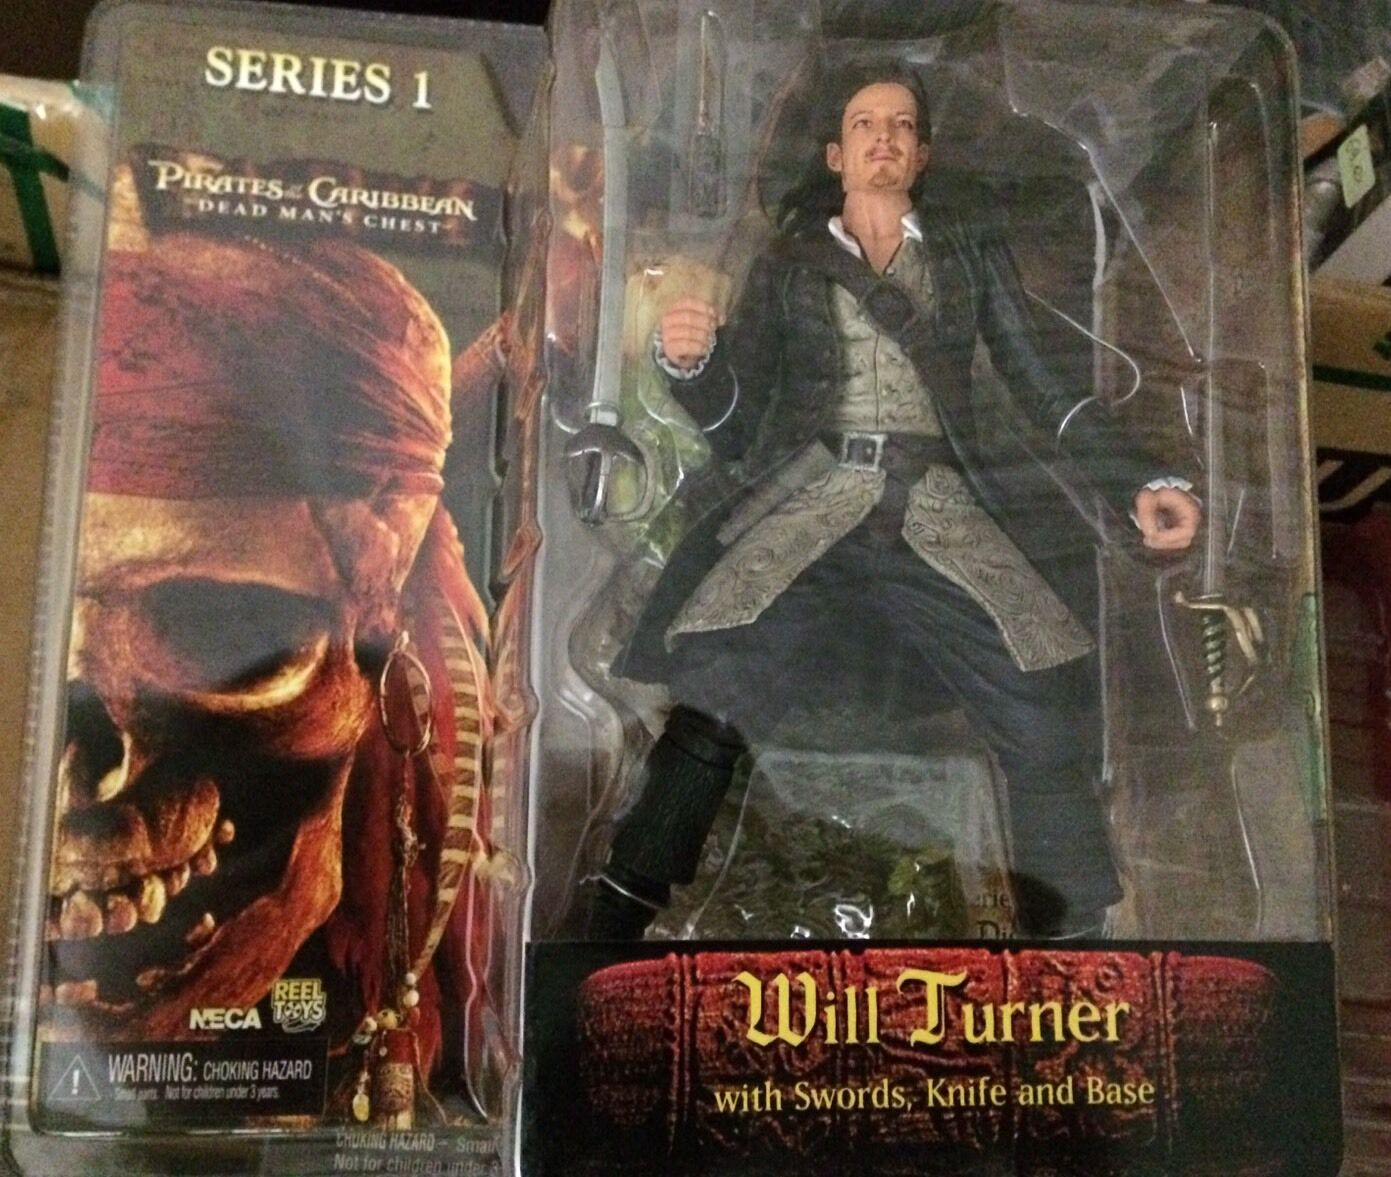 Neca Pirates of caribbean serie 1 Will Turner with sword, knife and base